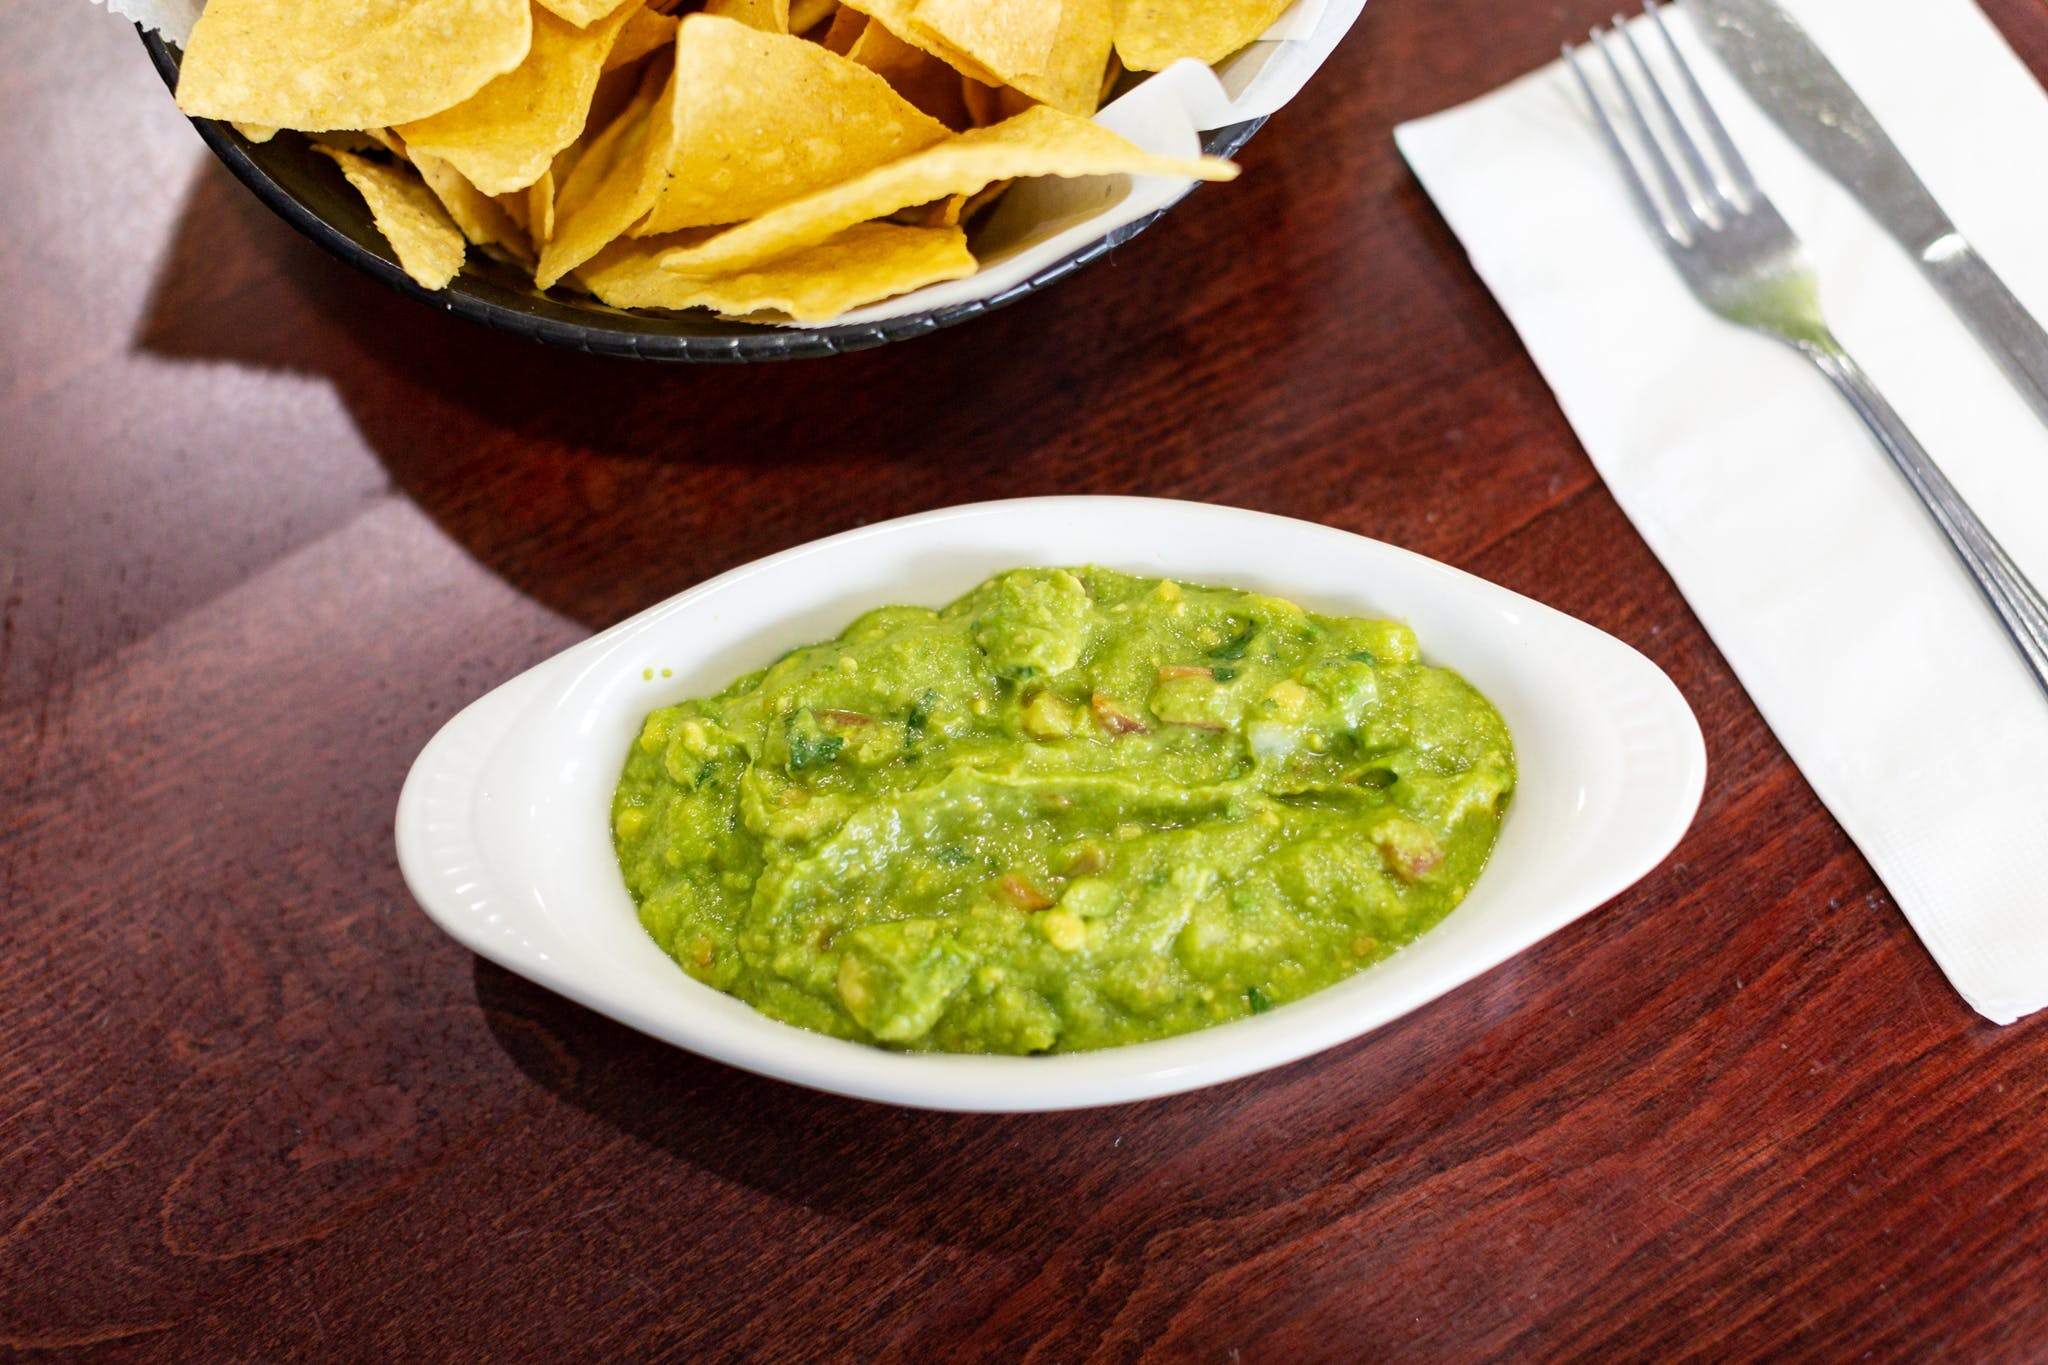 Guacamole Dip from Acapulco Mexican Grill in Lawrence, KS